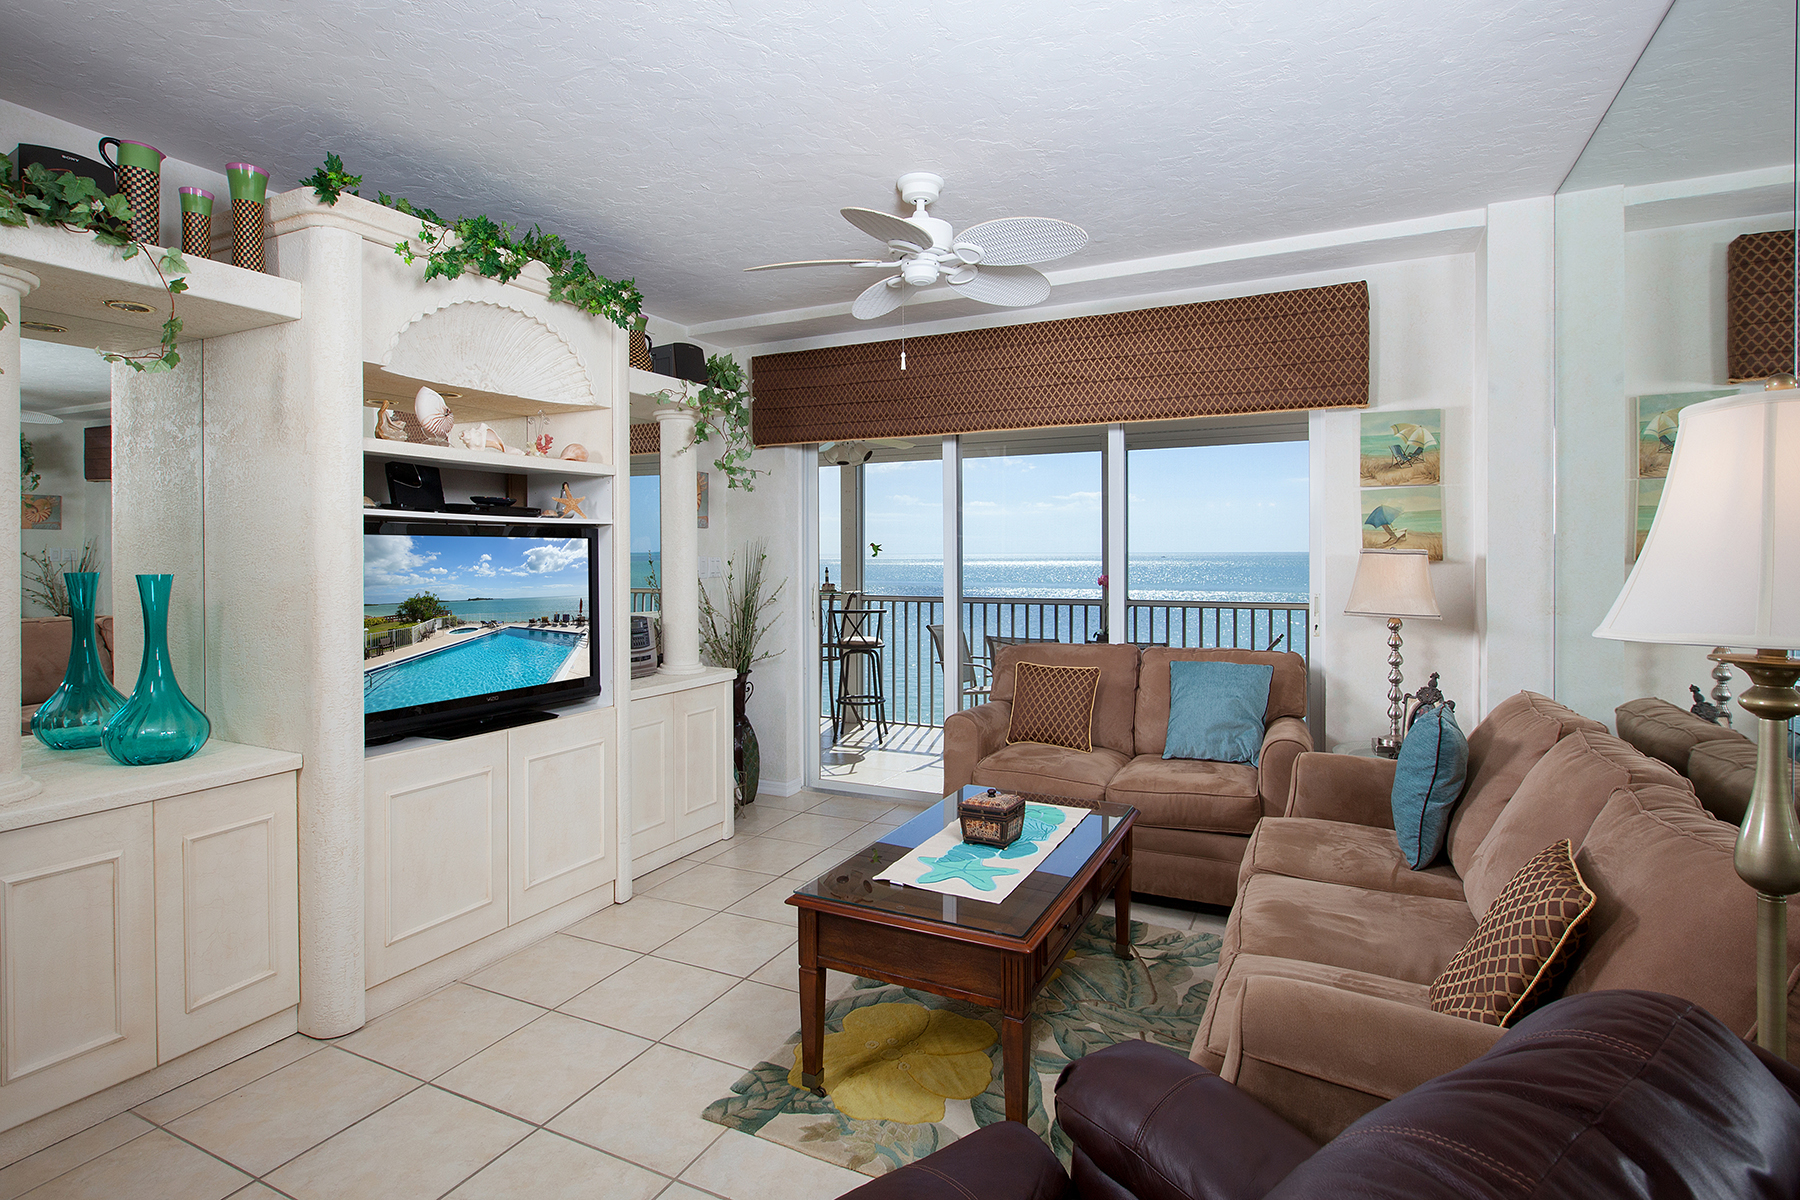 Condominium for Sale at MARCO ISLAND 1020 S Collier Blvd 204, Marco Island, Florida 34145 United States